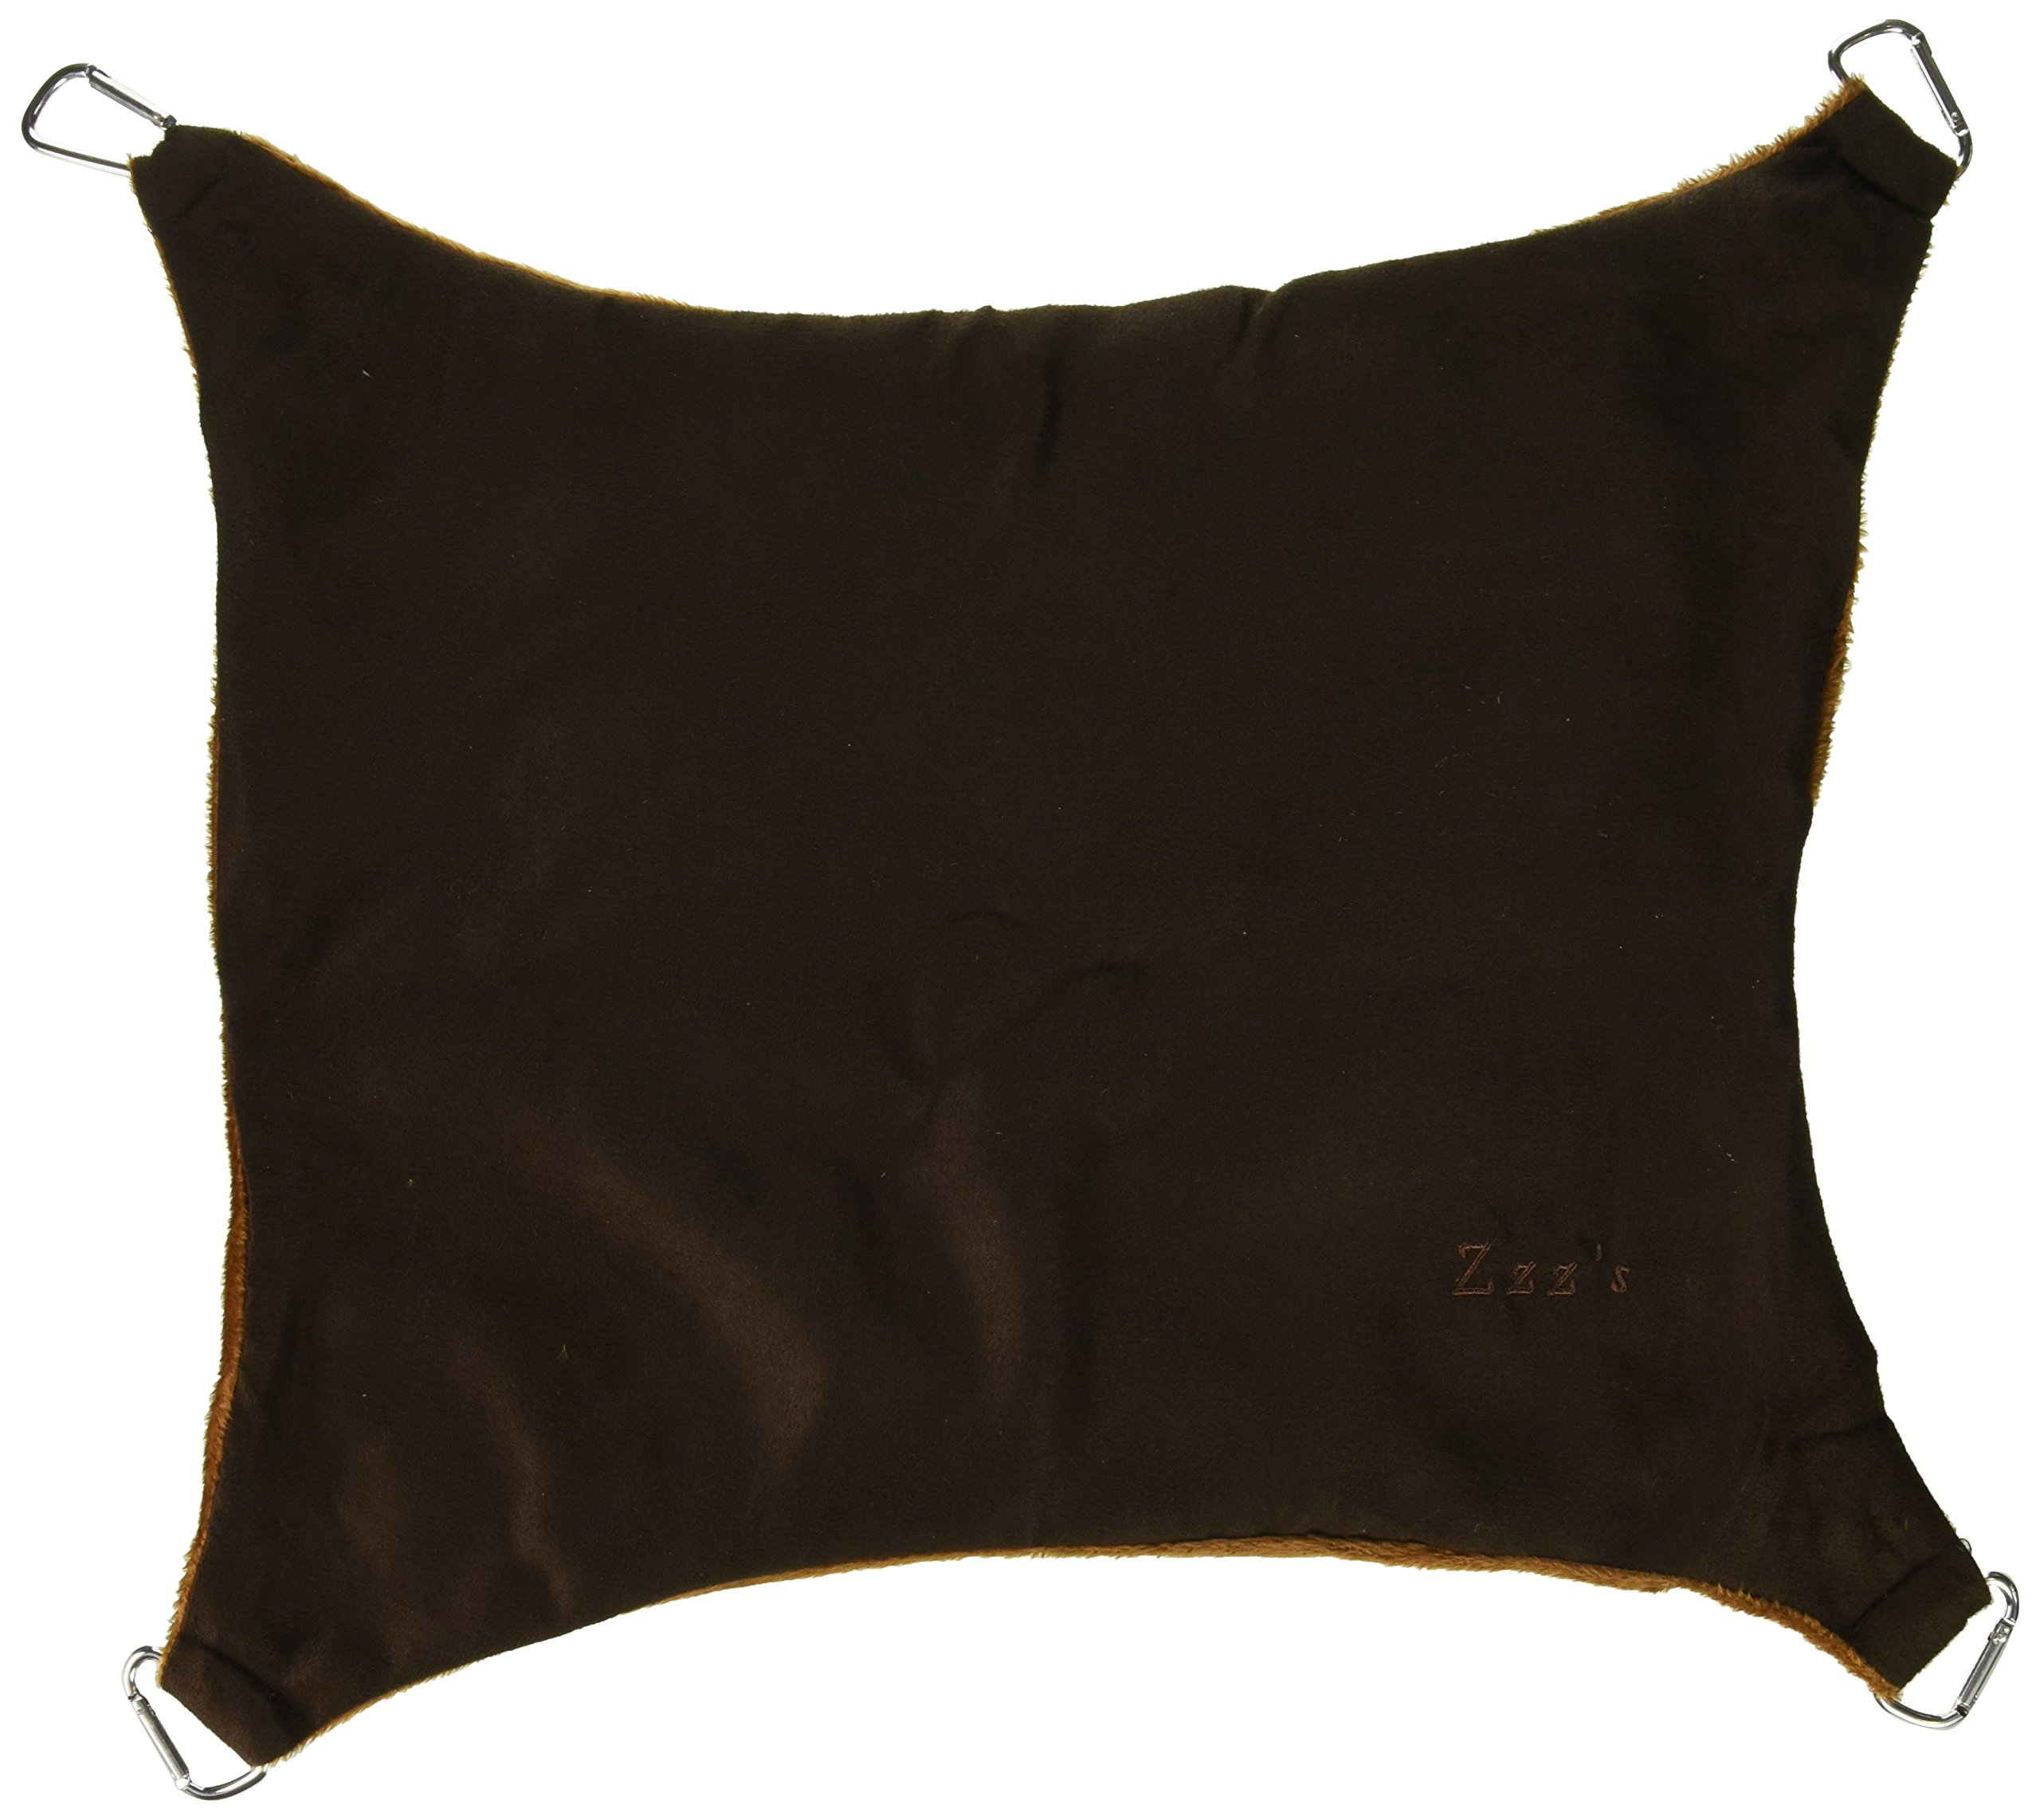 Prevue Pet Products SPVZZZ02 Zzz's Suede Hammock for Ferret, Colors Vary